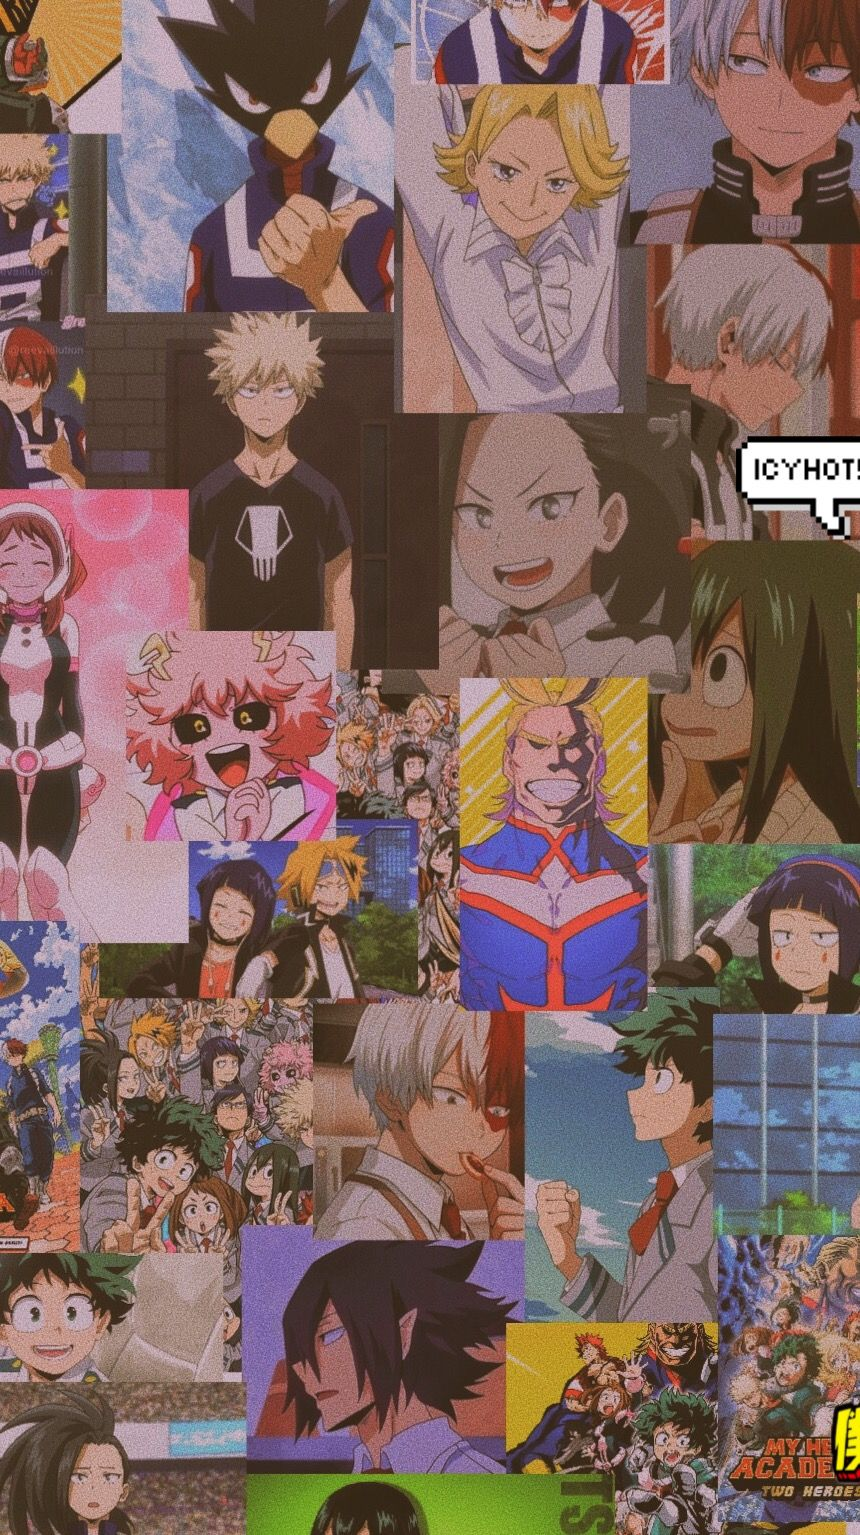 Anime · manga · « · download this wallpaper for ipad or choose another screen size or phone. My hero academia aesthetic wallpaper | Anime wallpaper ...